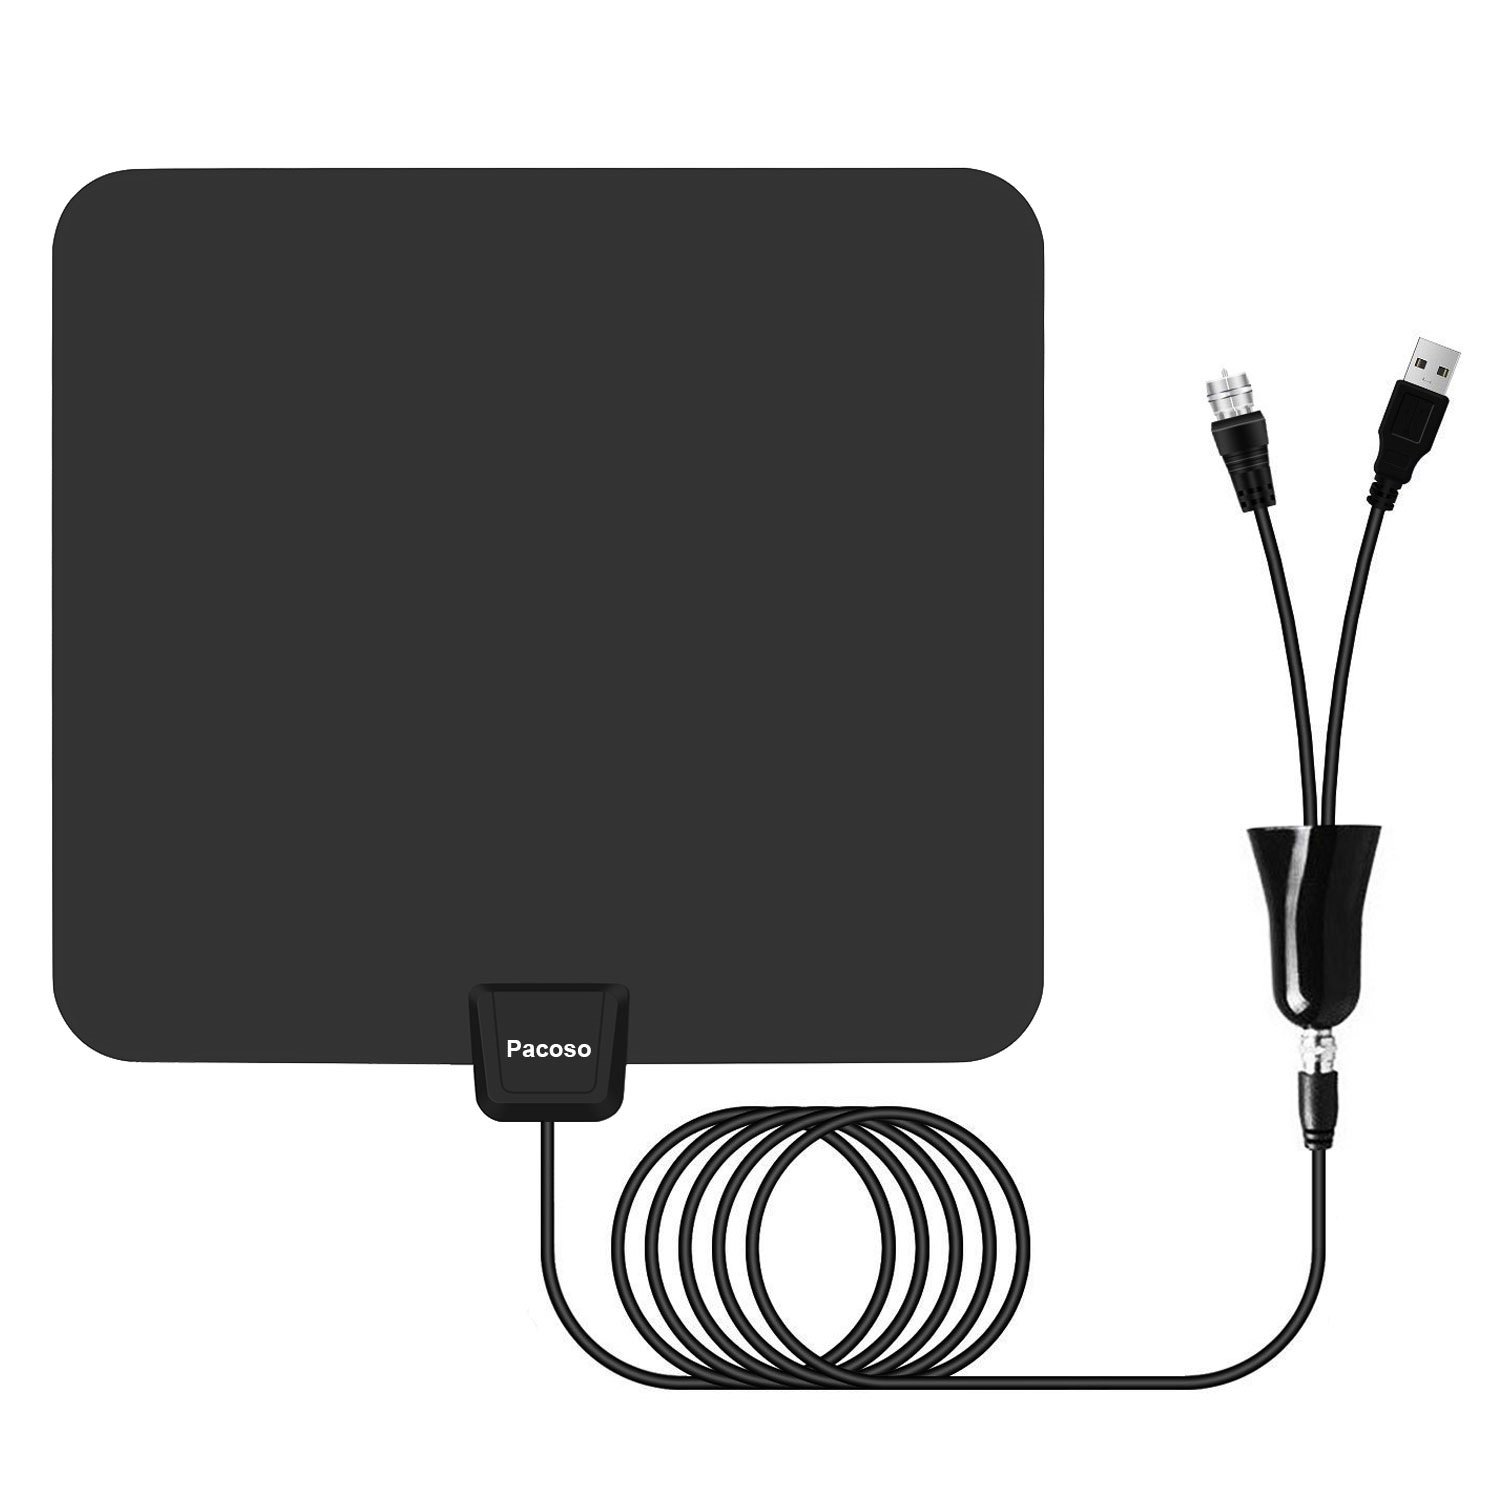 Pacoso Indoor Amplified HD TV Antenna 65-80 Miles Range - Support 4K 1080p & All Older TV's for Indoor with Powerful HDTV Amplifier Signal Booster/Longer Coax Cable